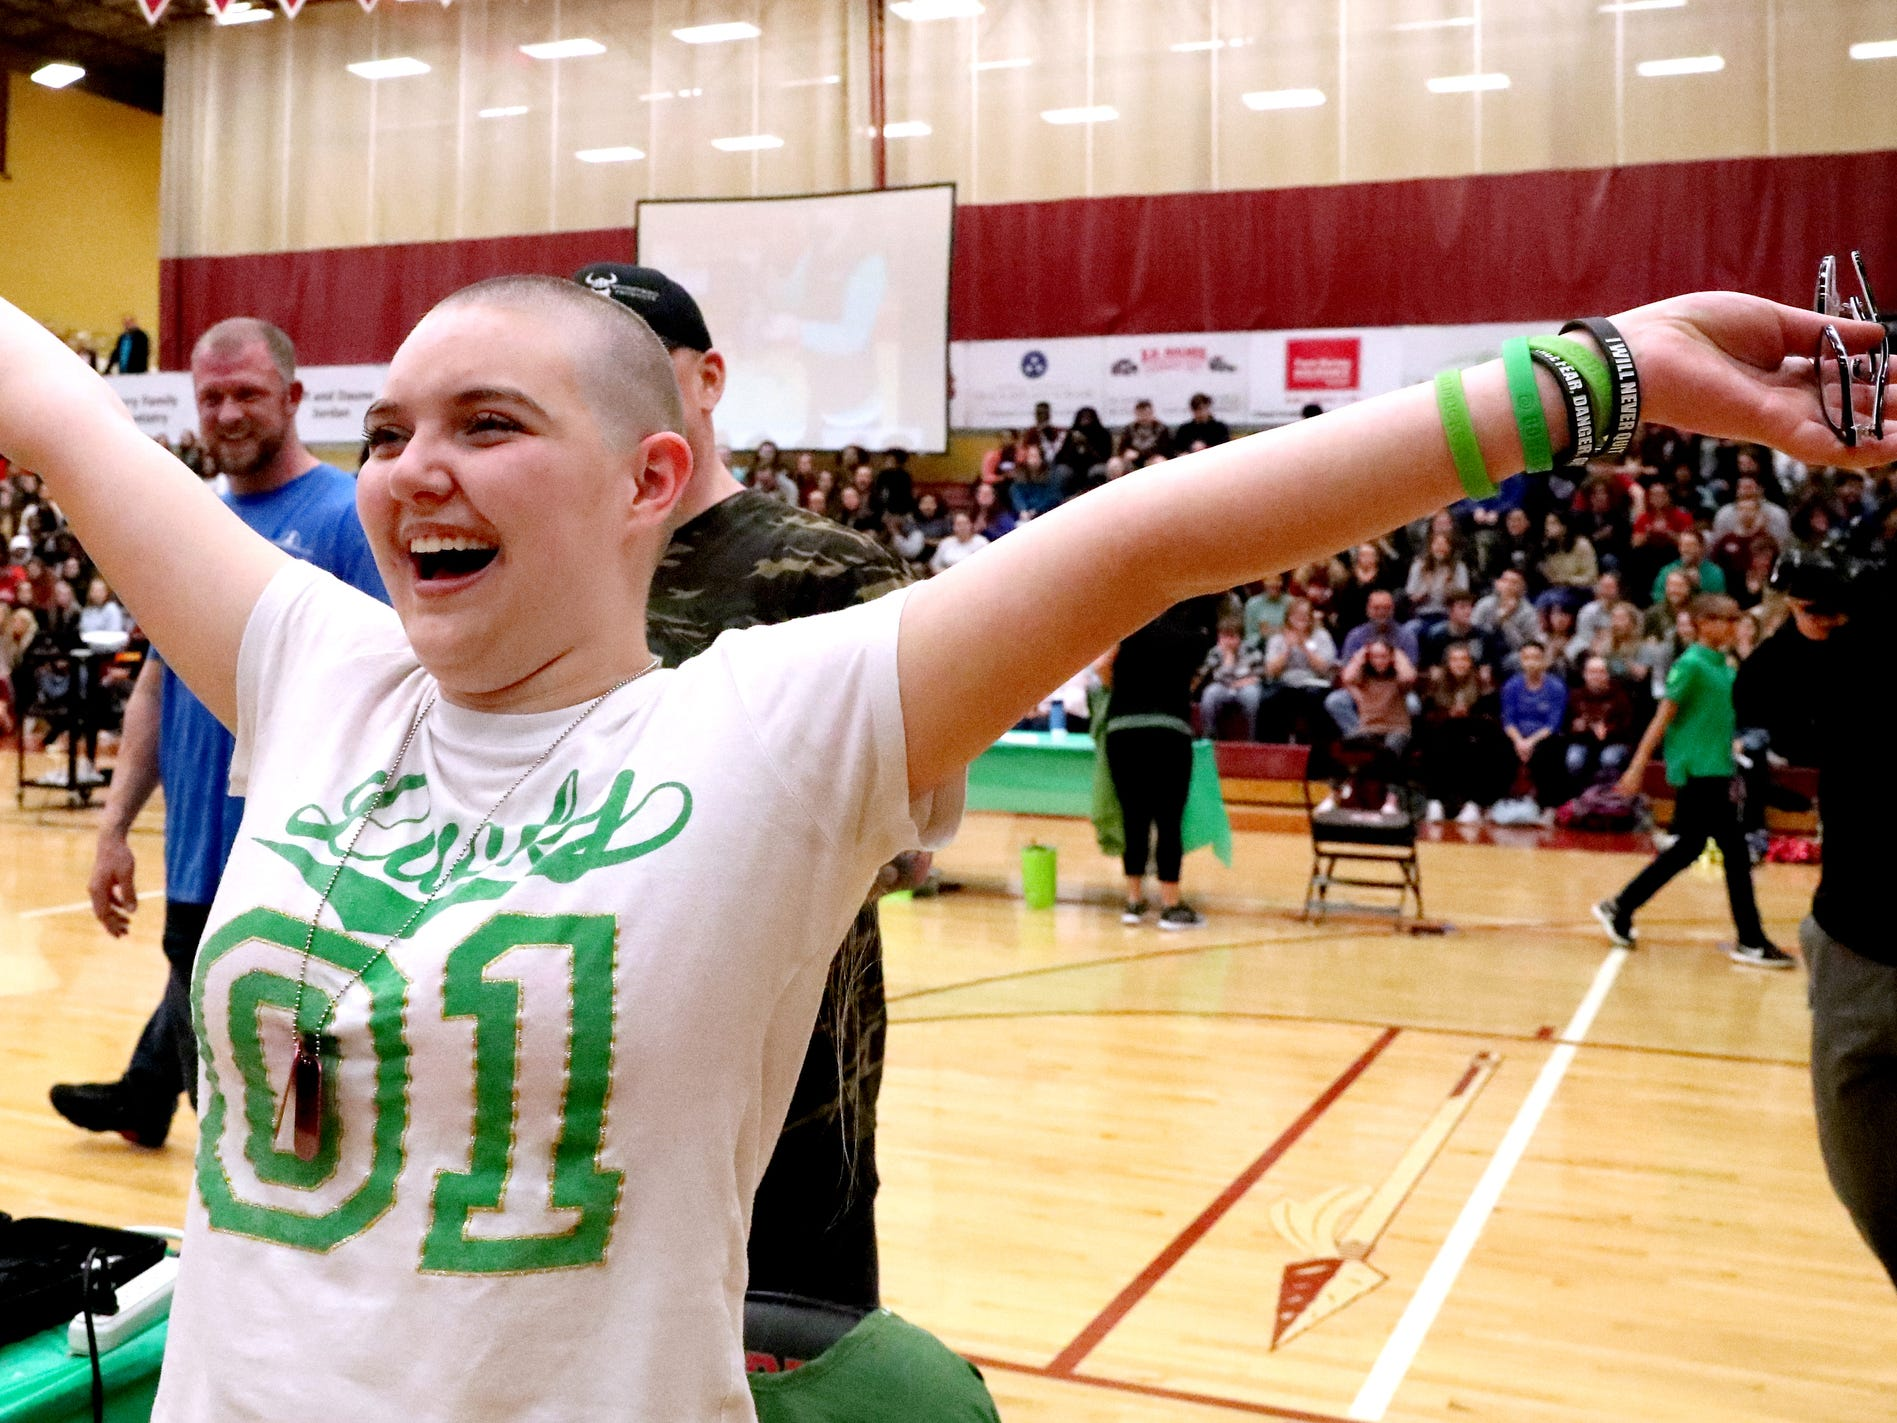 Kalianna Buck celebrates after she gets her head shaved during Riverdale High School's sixth annual Brave the Shave fundraiser to benefit St. Baldrick's Foundation on Thursday, March 21, 2019. The organization raises funds and awareness for childhood cancer.